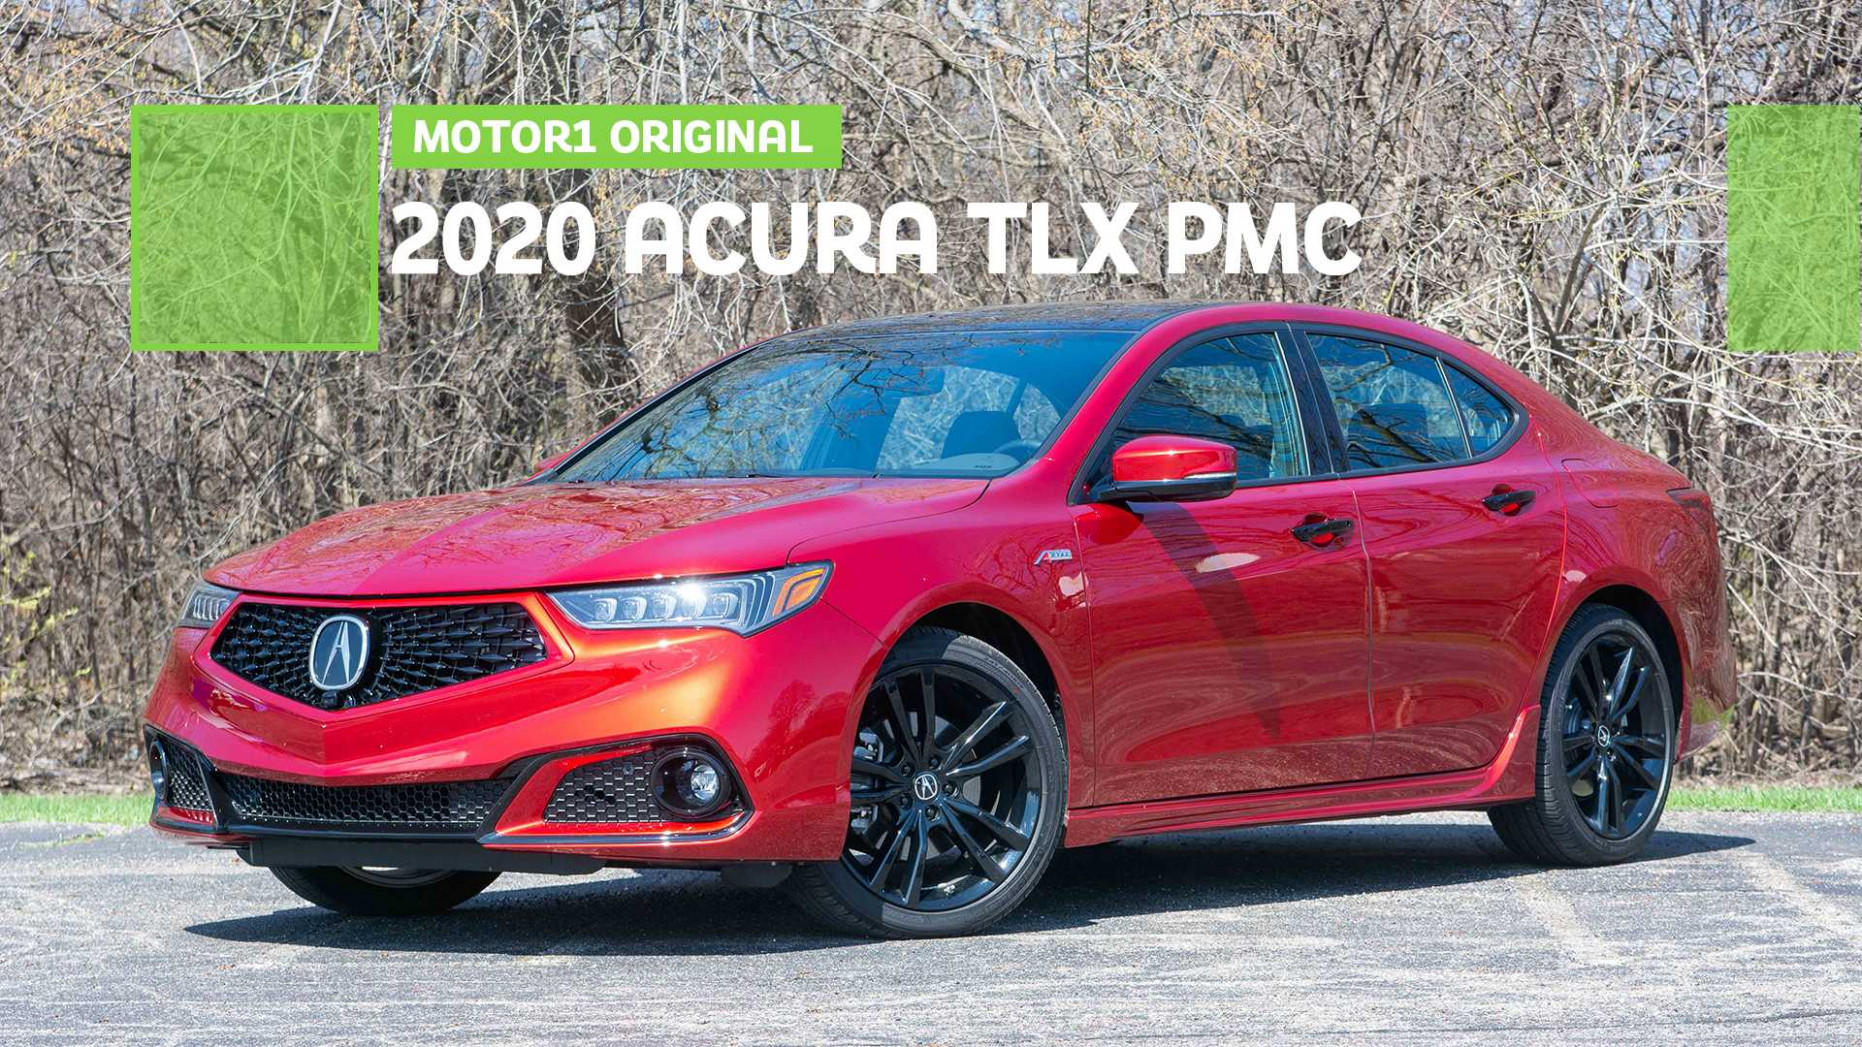 7 Acura TLX PMC Is Hand-Built And Handsome, But More Of The Same - 2020 acura xlt